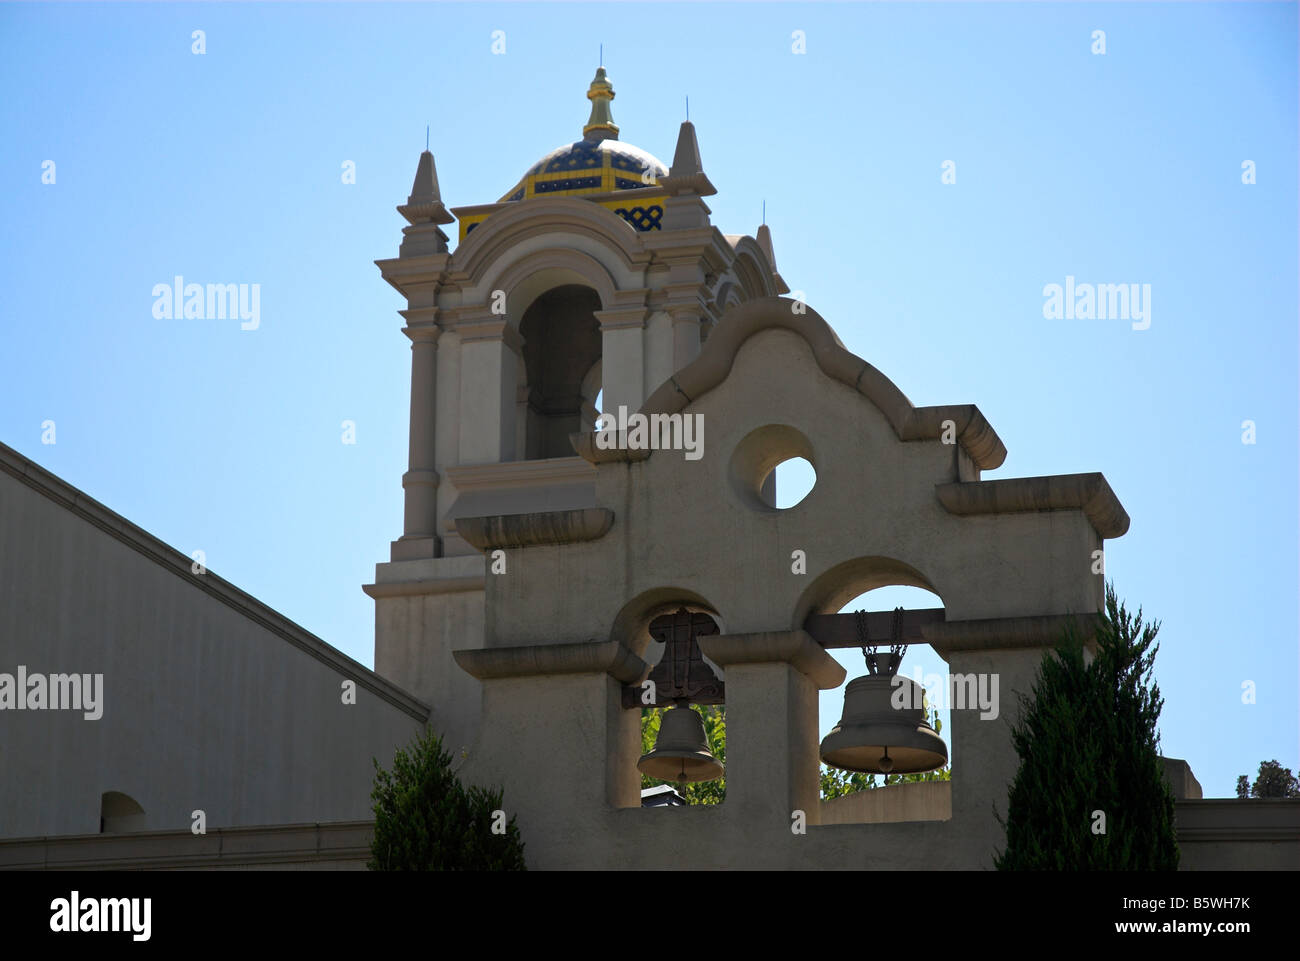 Belltowers along 'El Prado' at Balboa Park in San Diego, California, USA (horizontal orientation) - Stock Image